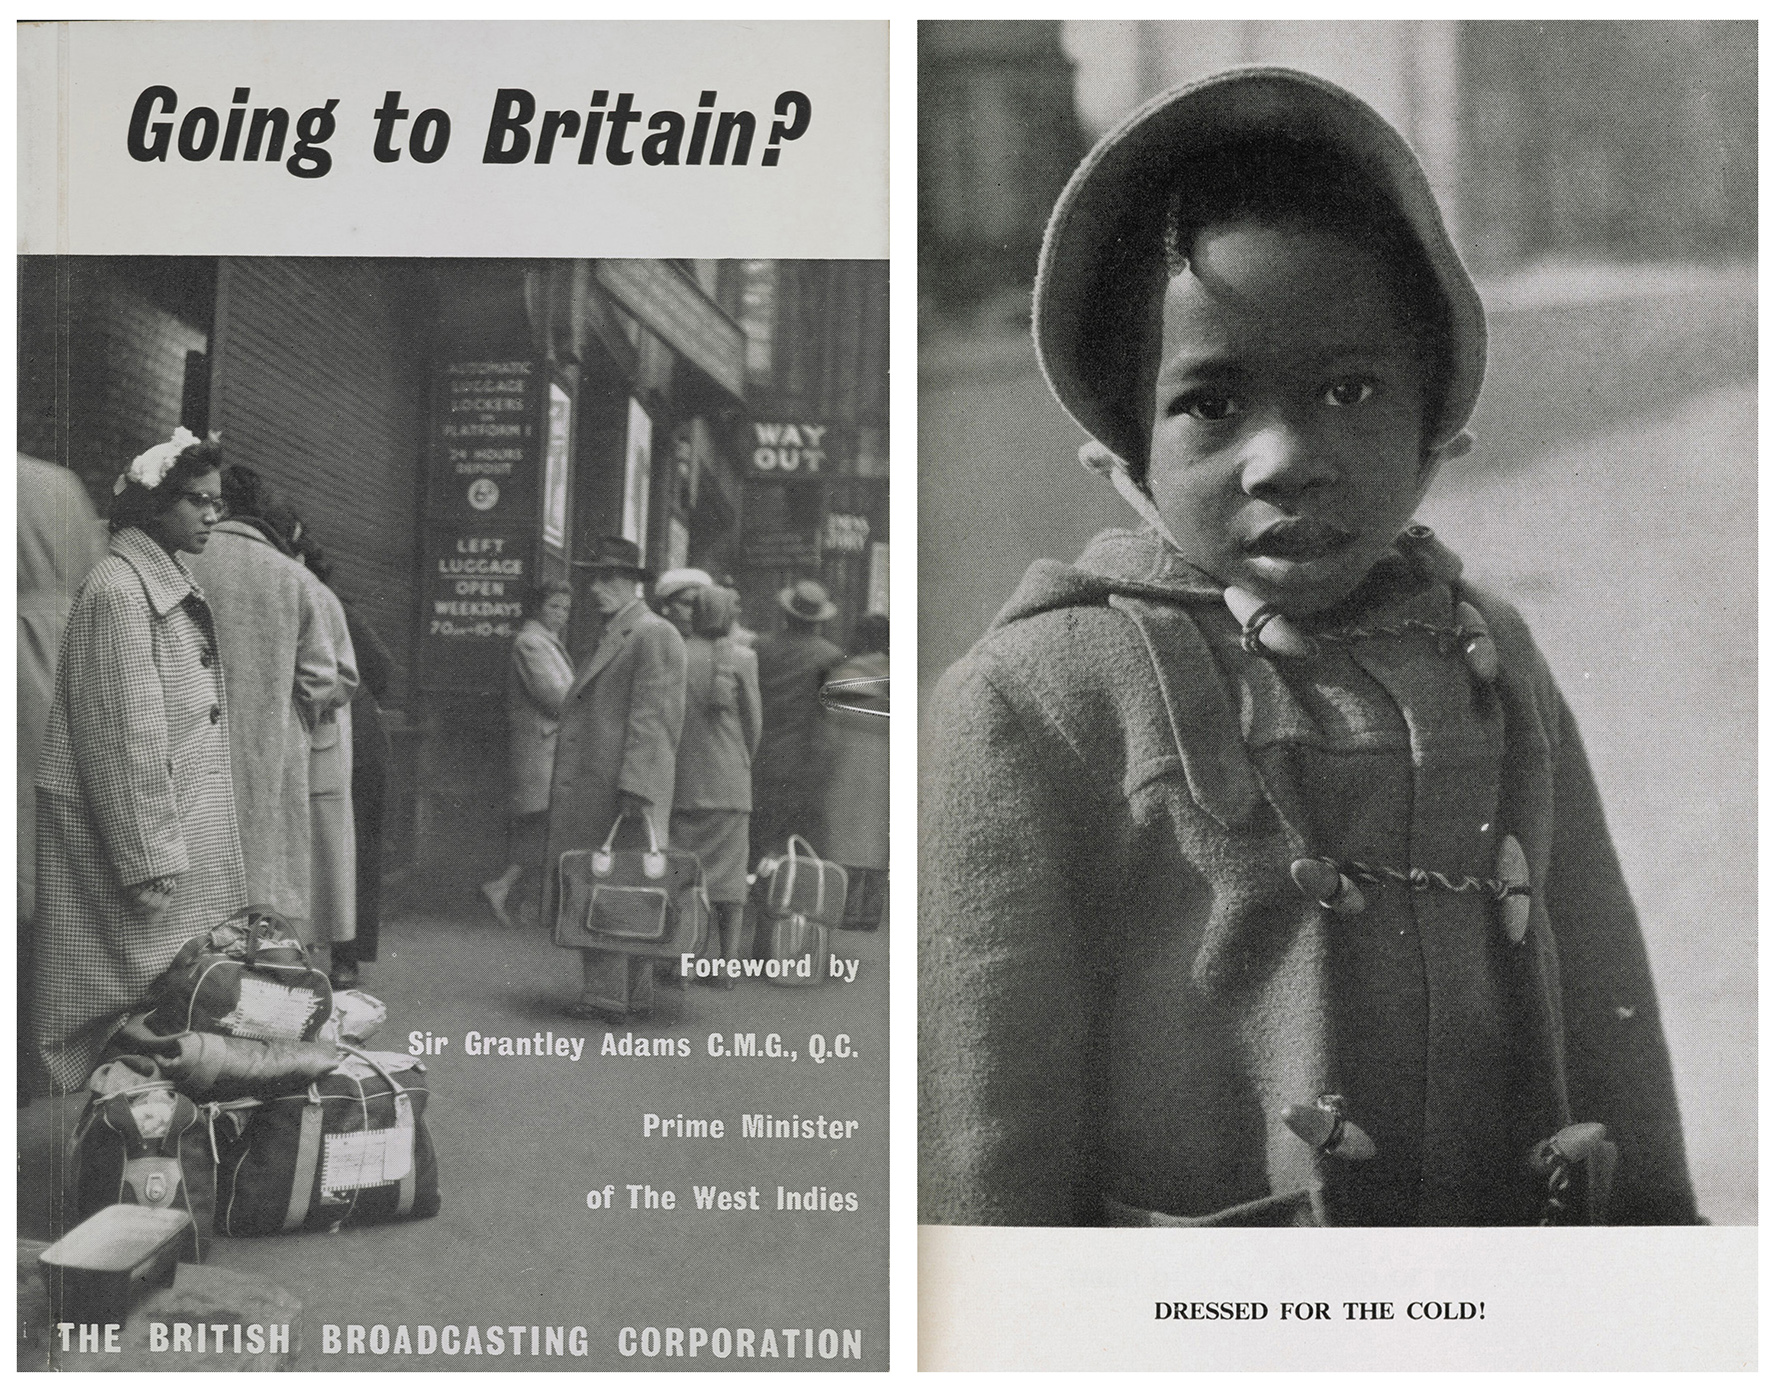 Going to Britain booklet | © BBC. British Library